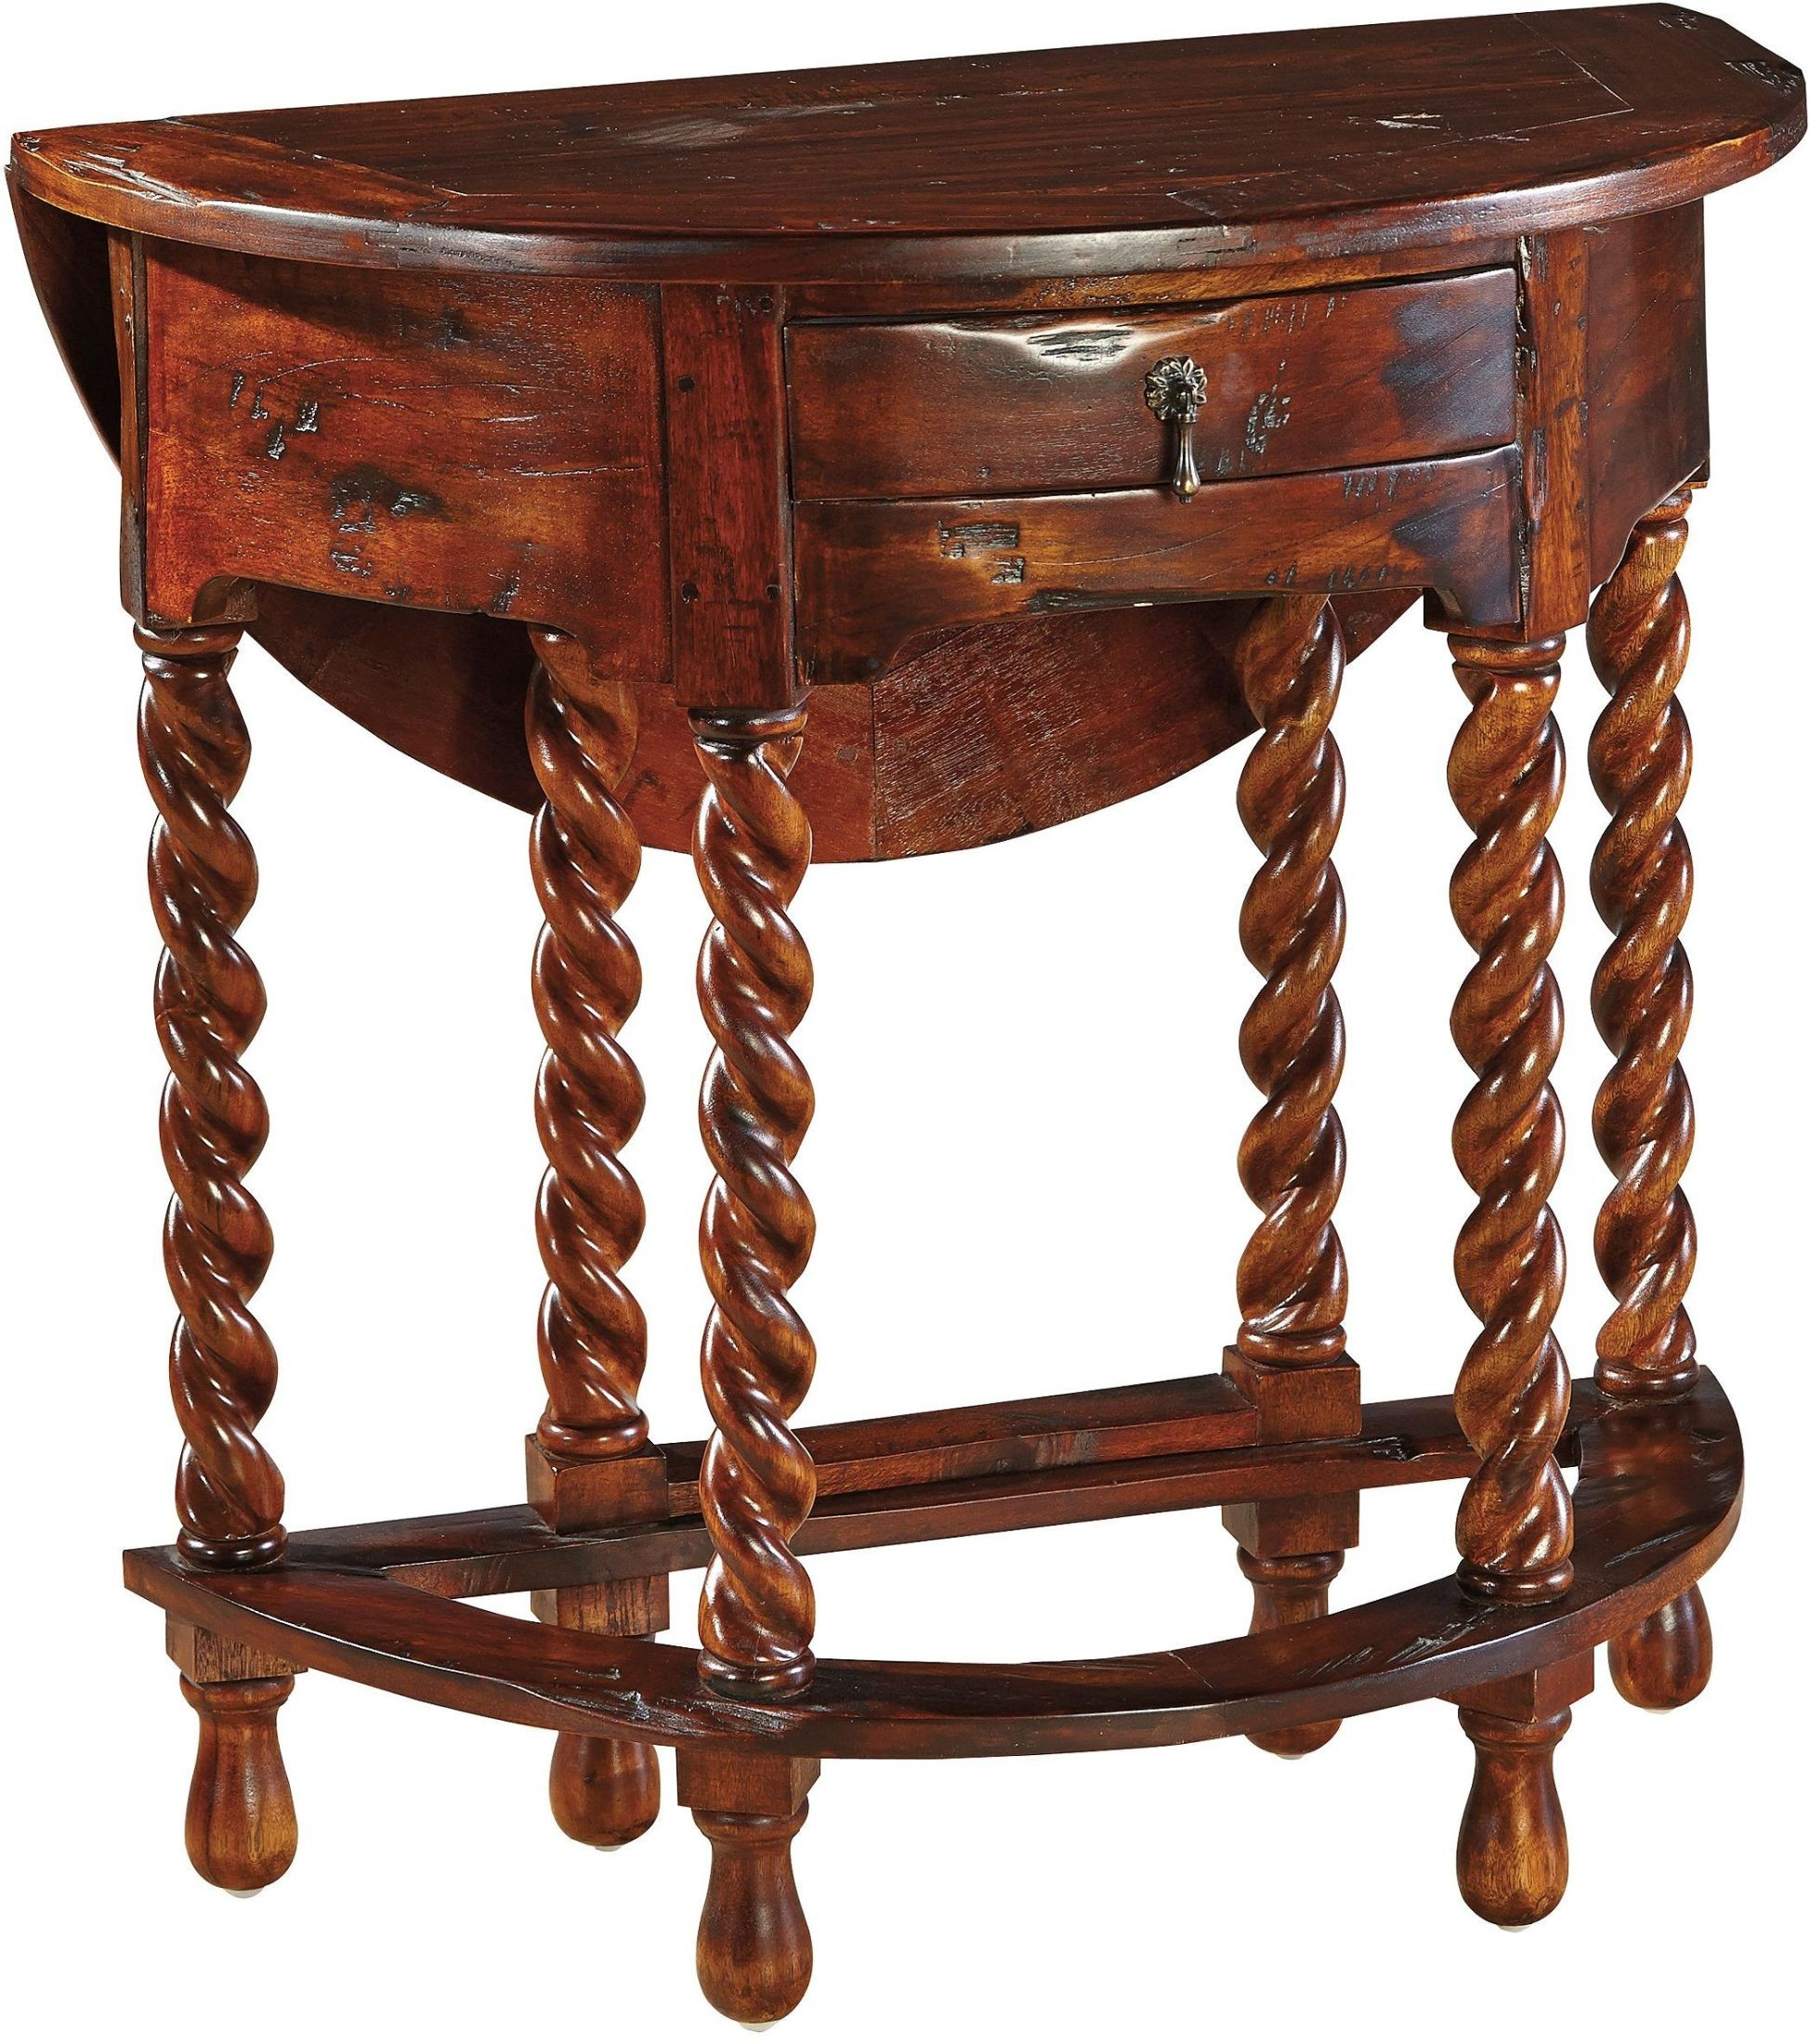 Gateleg Brown Barley Twist Plank Top Extendable Table From Furniture Classics Coleman Furniture